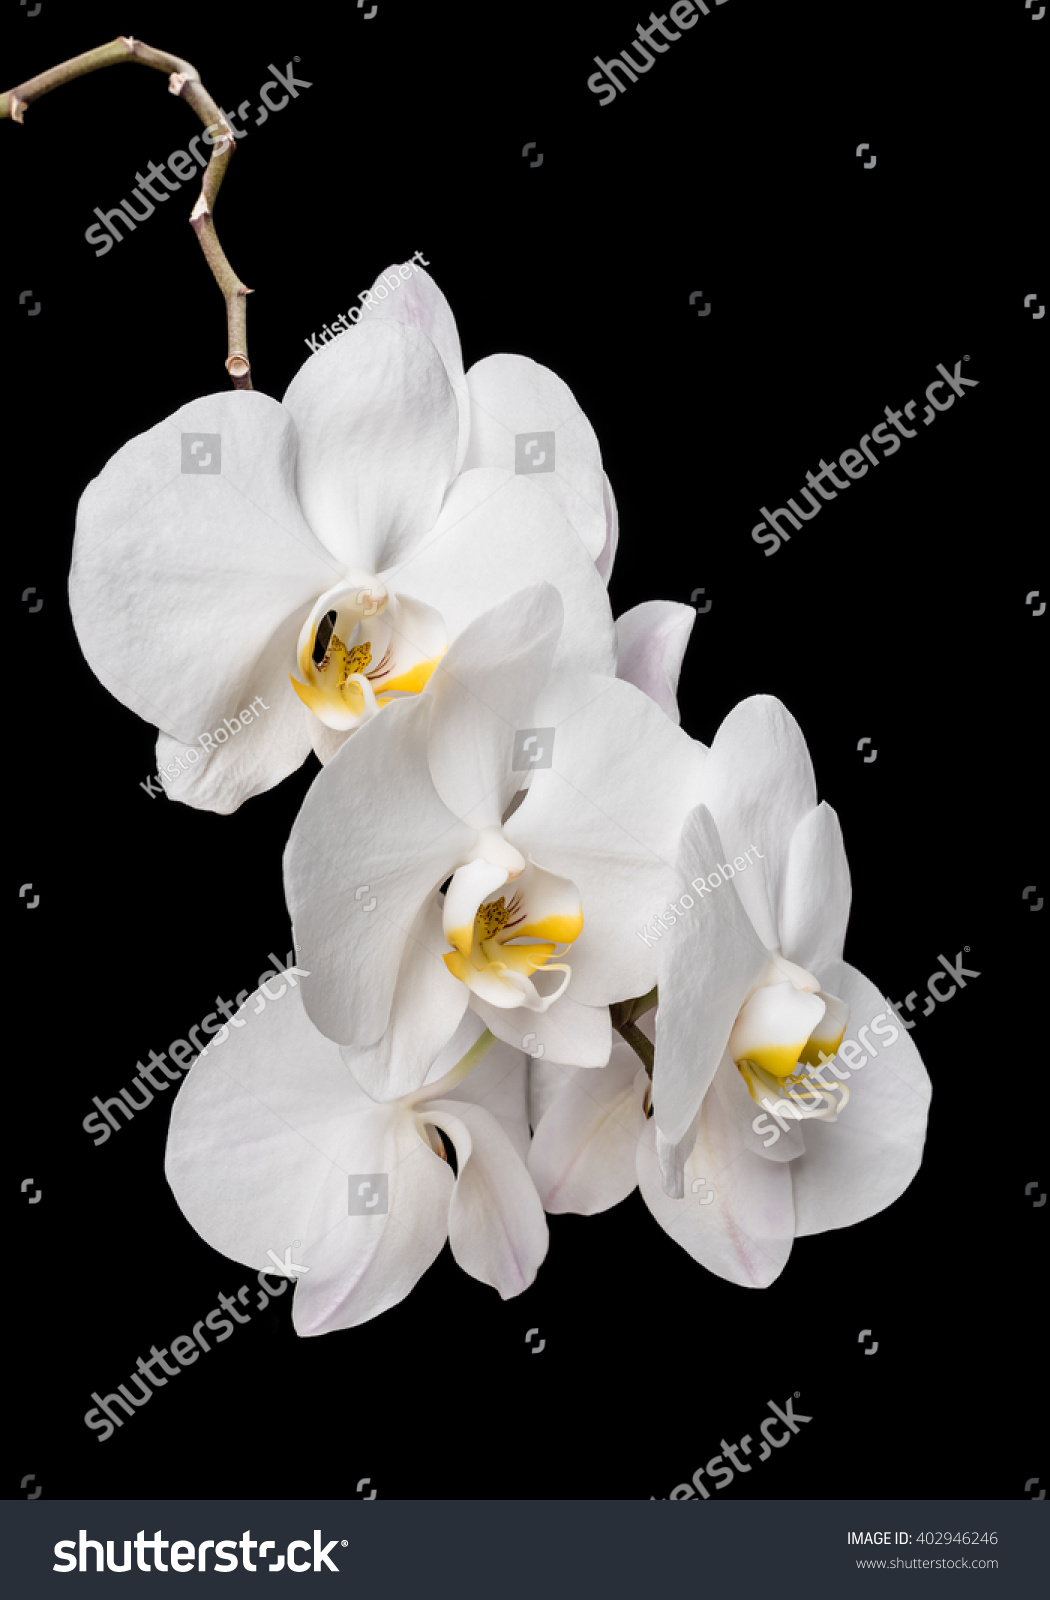 White Orchid Flowers Isolated On Black Background White Orchid